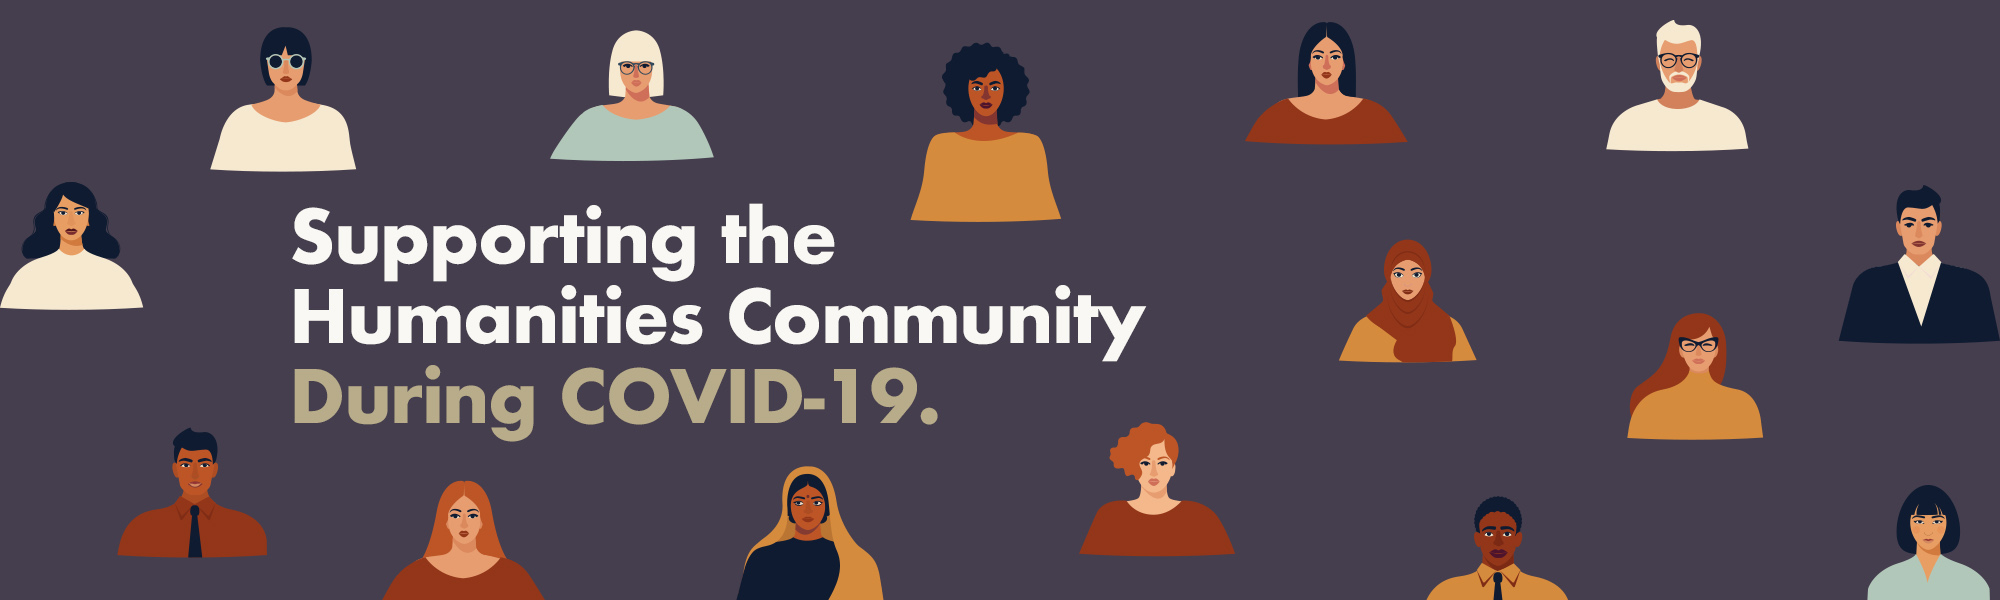 Support the humanities community during COVID-19.